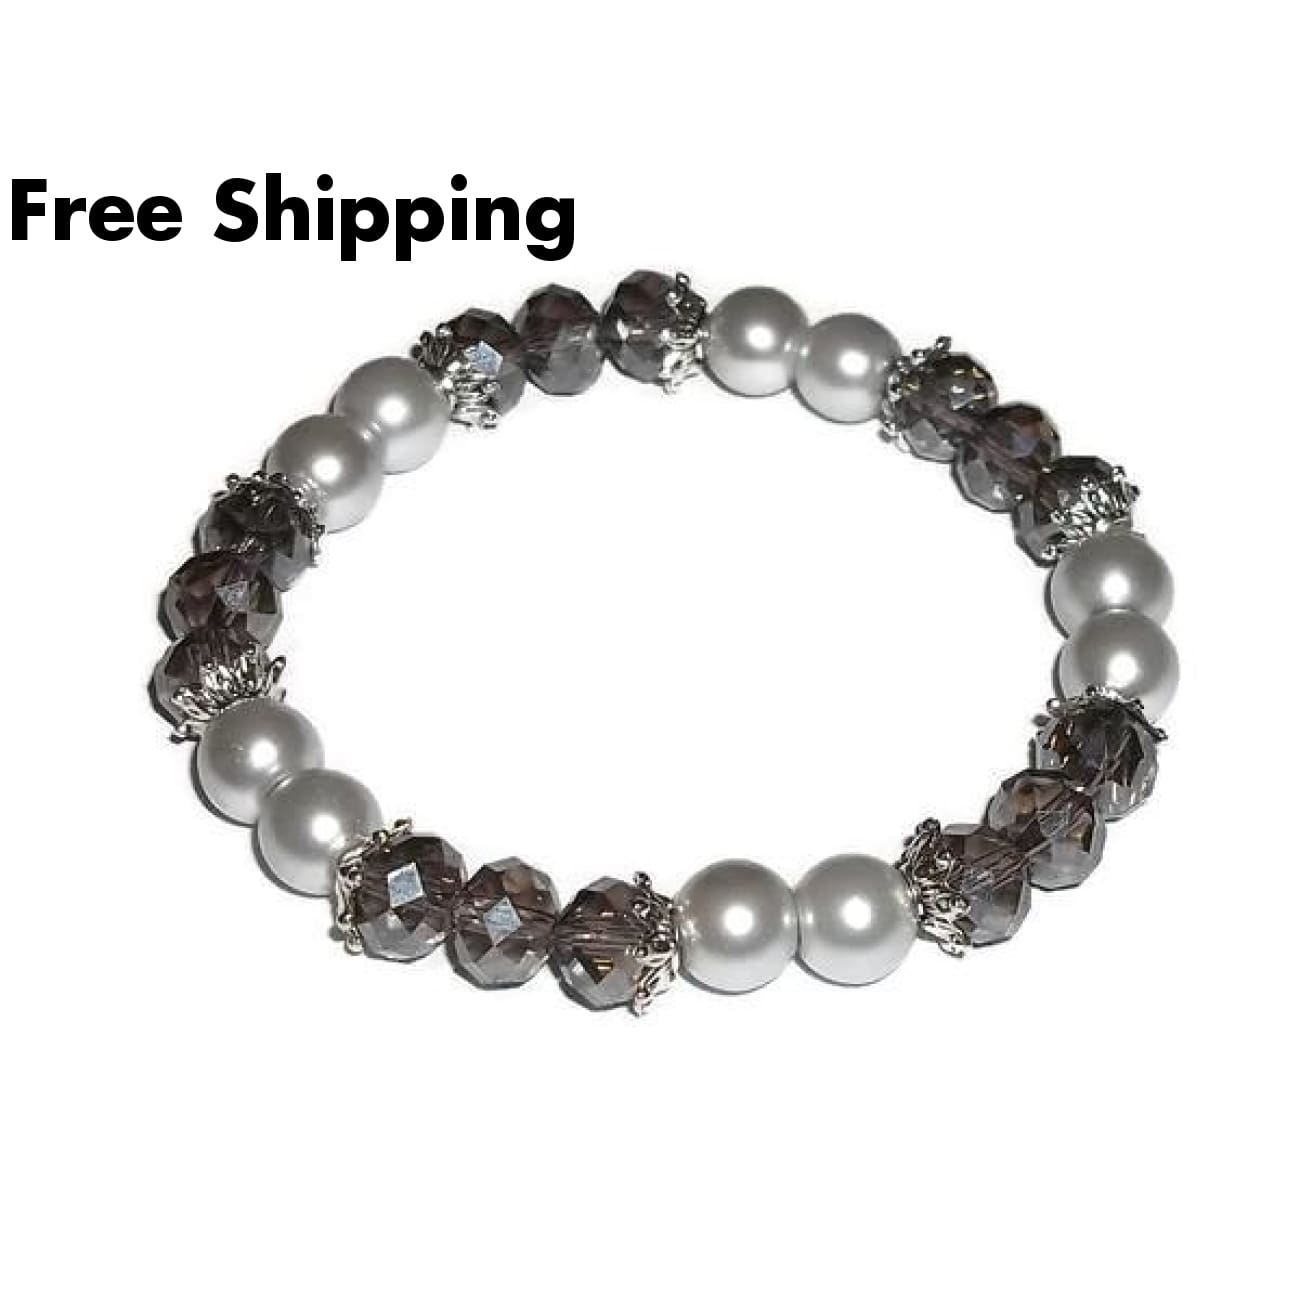 Light Grey Swarovski Crystal & Dark Grey Glass Pearl Beaded Artisan Crafted Stretch Bracelet ~ (M-L) - Bracelets